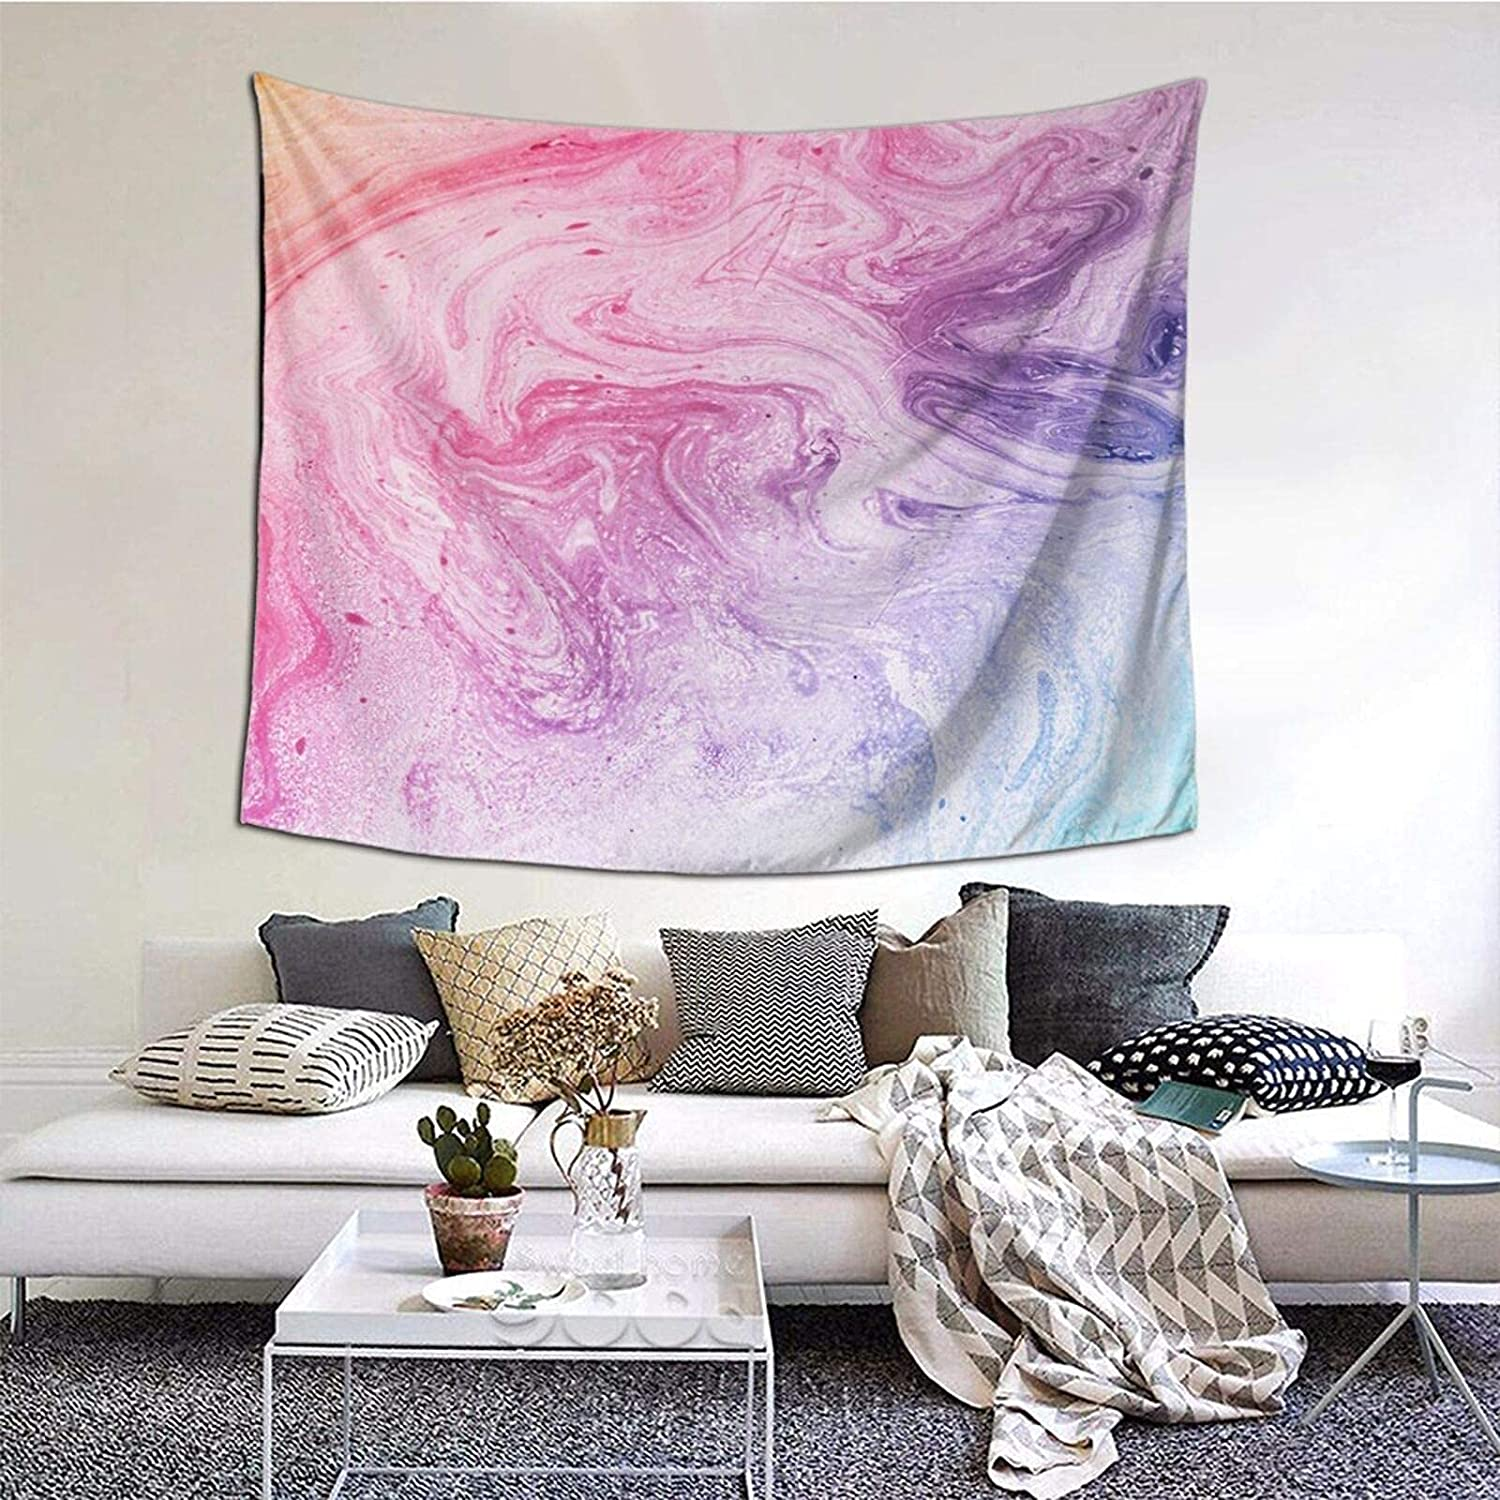 Colorful Marble Pastel Pink Blue Purple Tapestry Wall Hanging Print Tapestry,Bedroom Tapestry.Wall Hanging Dorm Decor For Living Room Bedroom,60 X 51 Inch